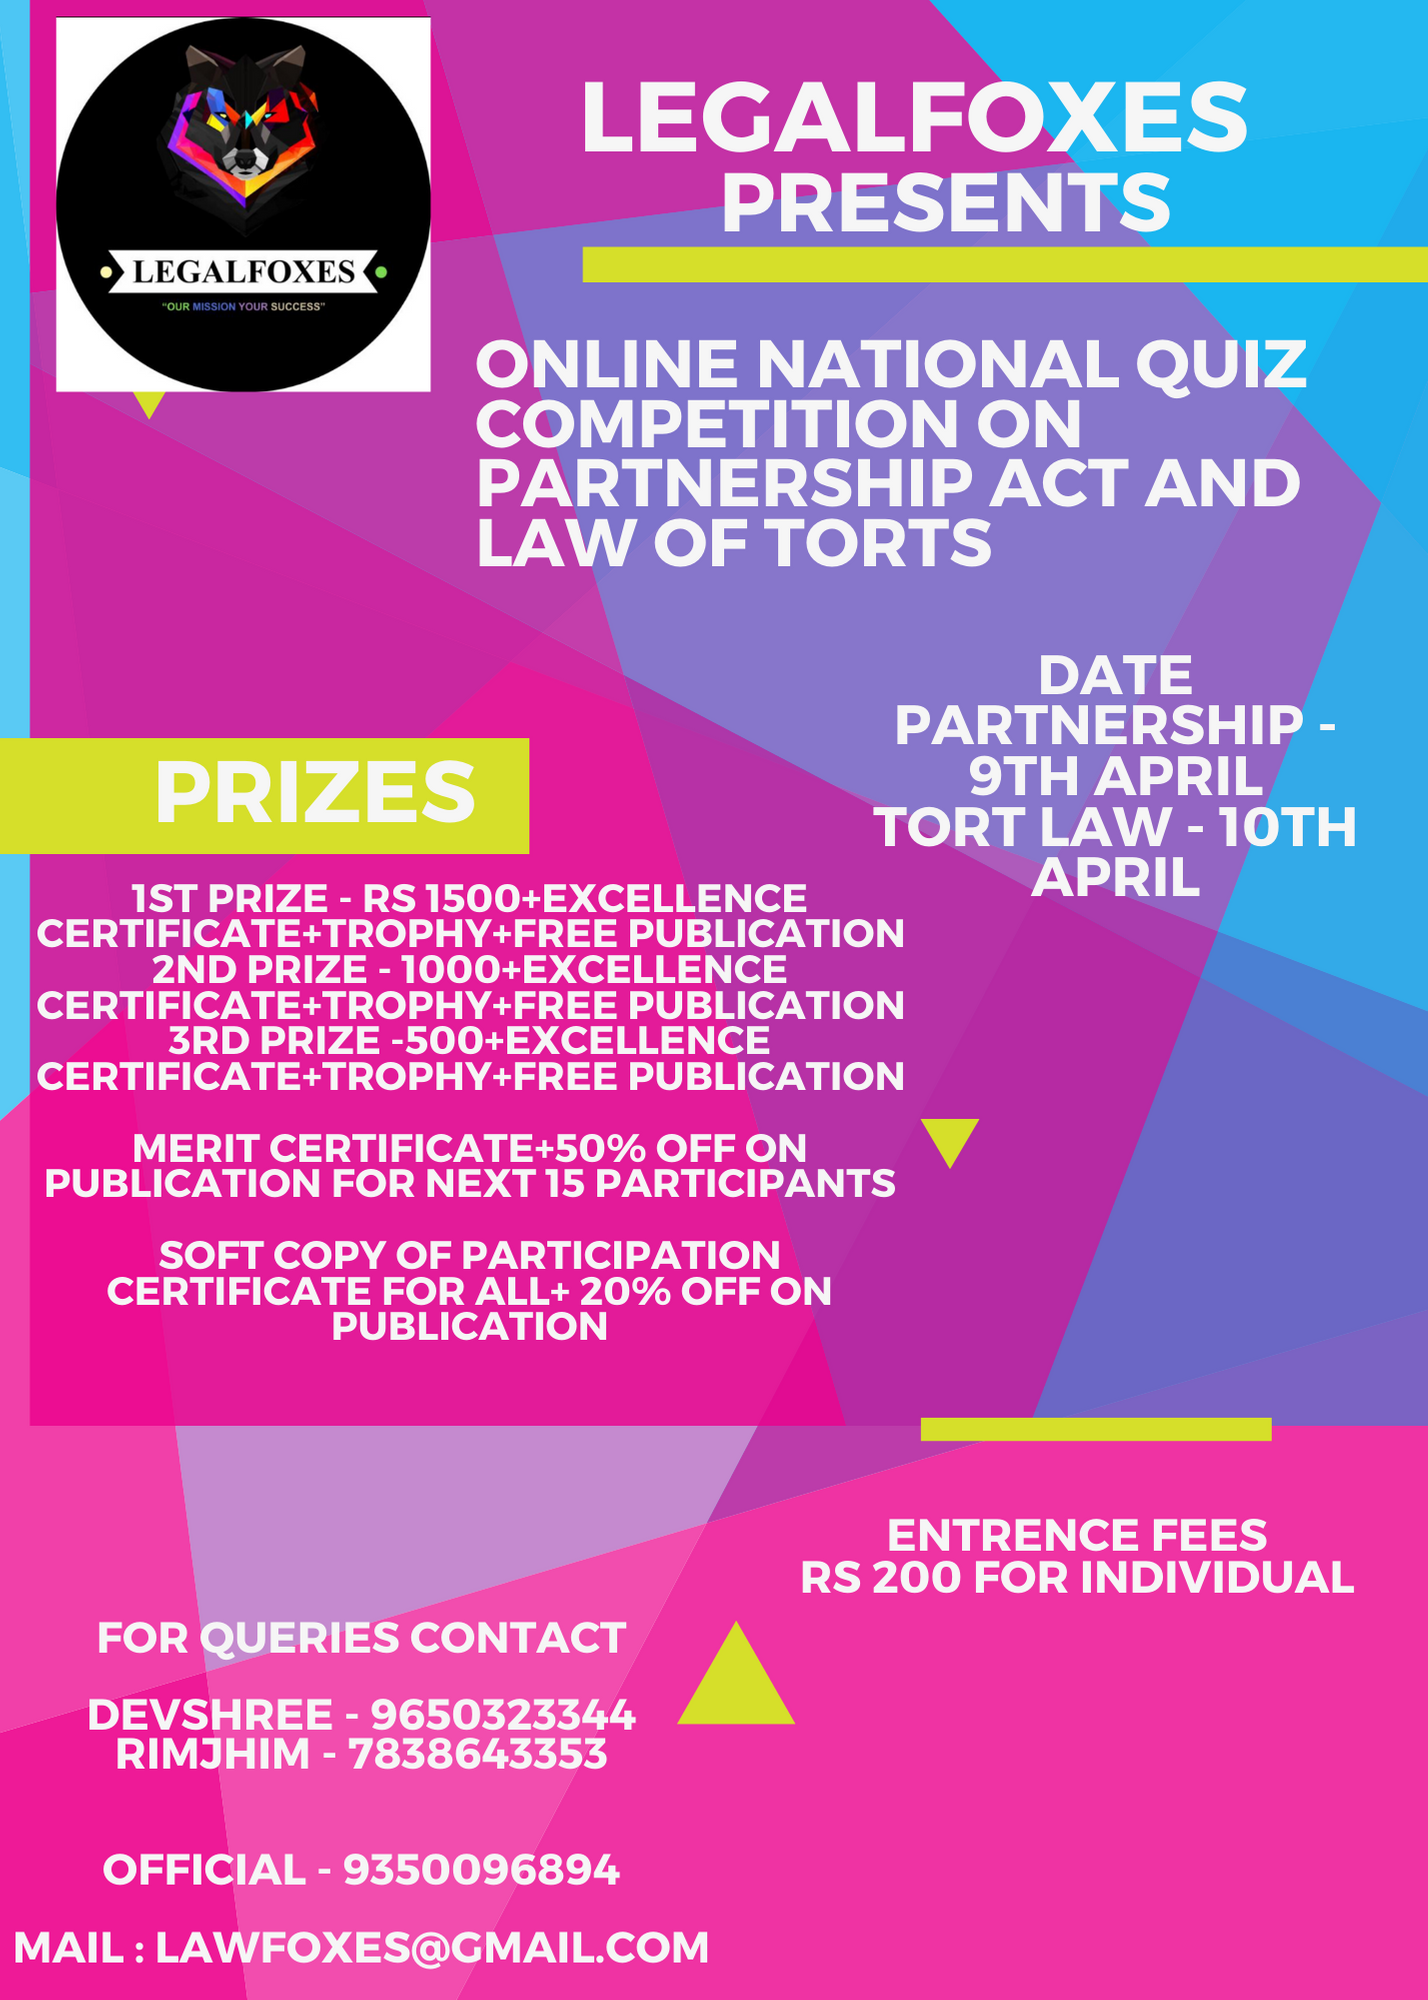 Legal Foxes' 8th Online Quiz Competition on Partnership Act and Law of Torts